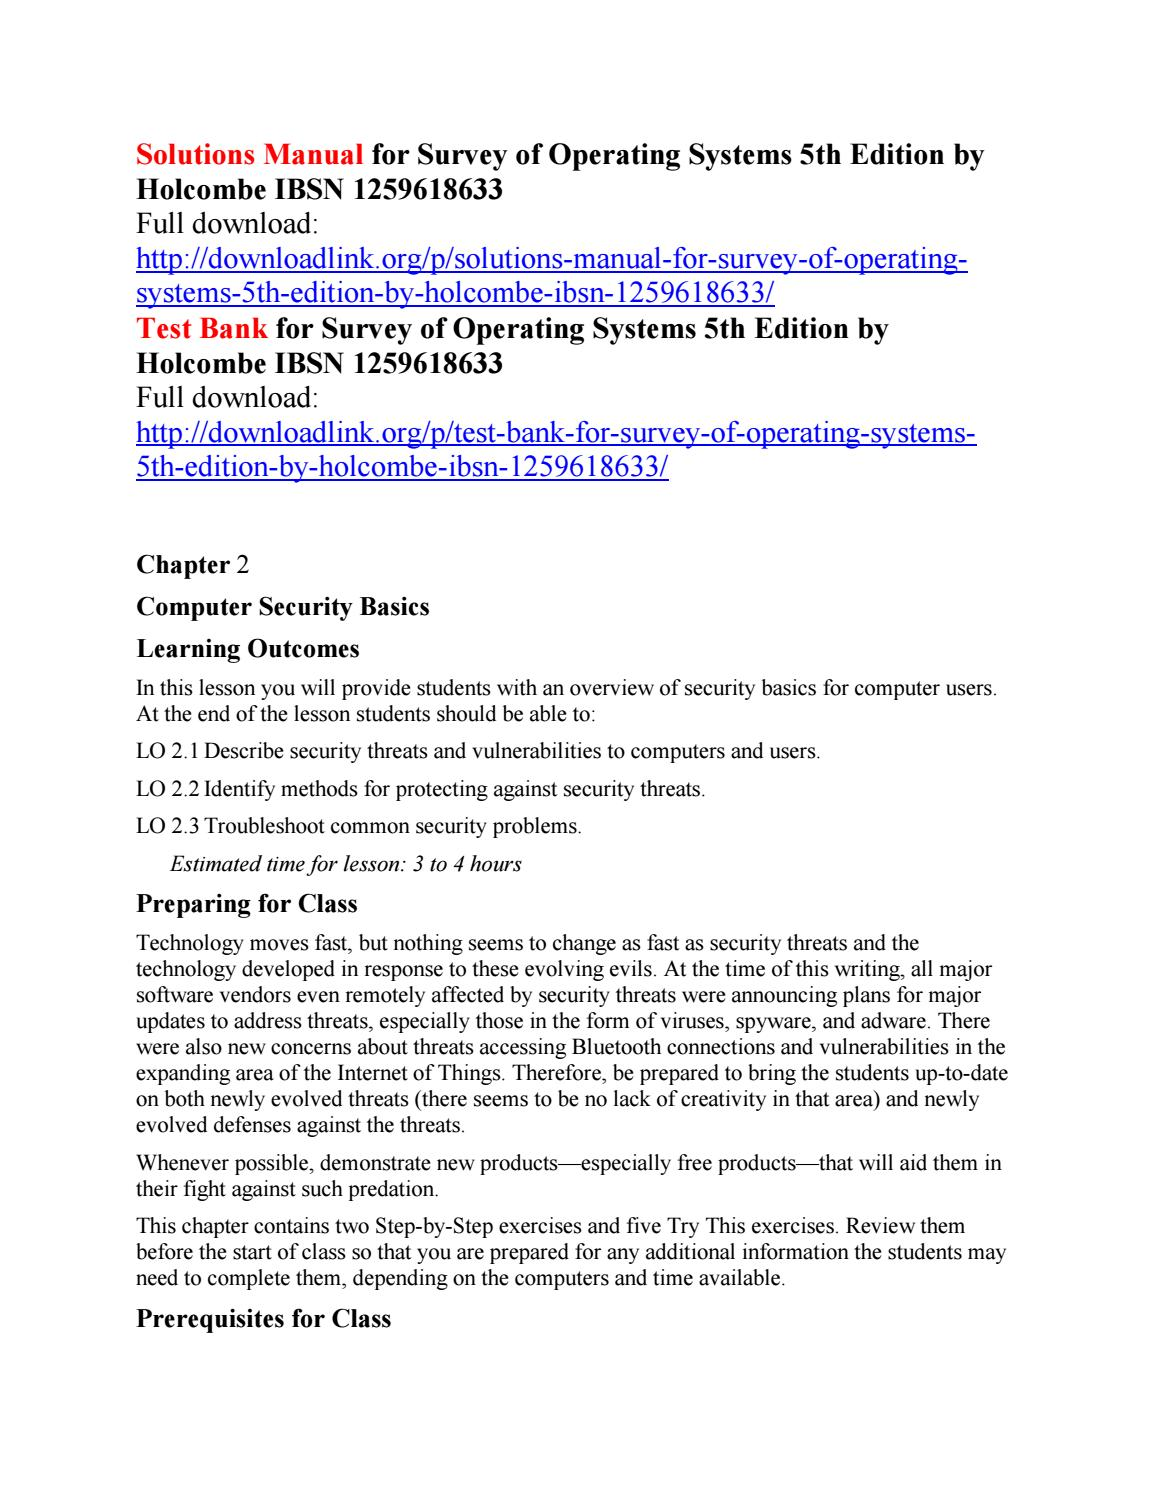 Solutions manual for survey of operating systems 5th edition by holcombe  ibsn 1259618633 by Bake111 - issuu